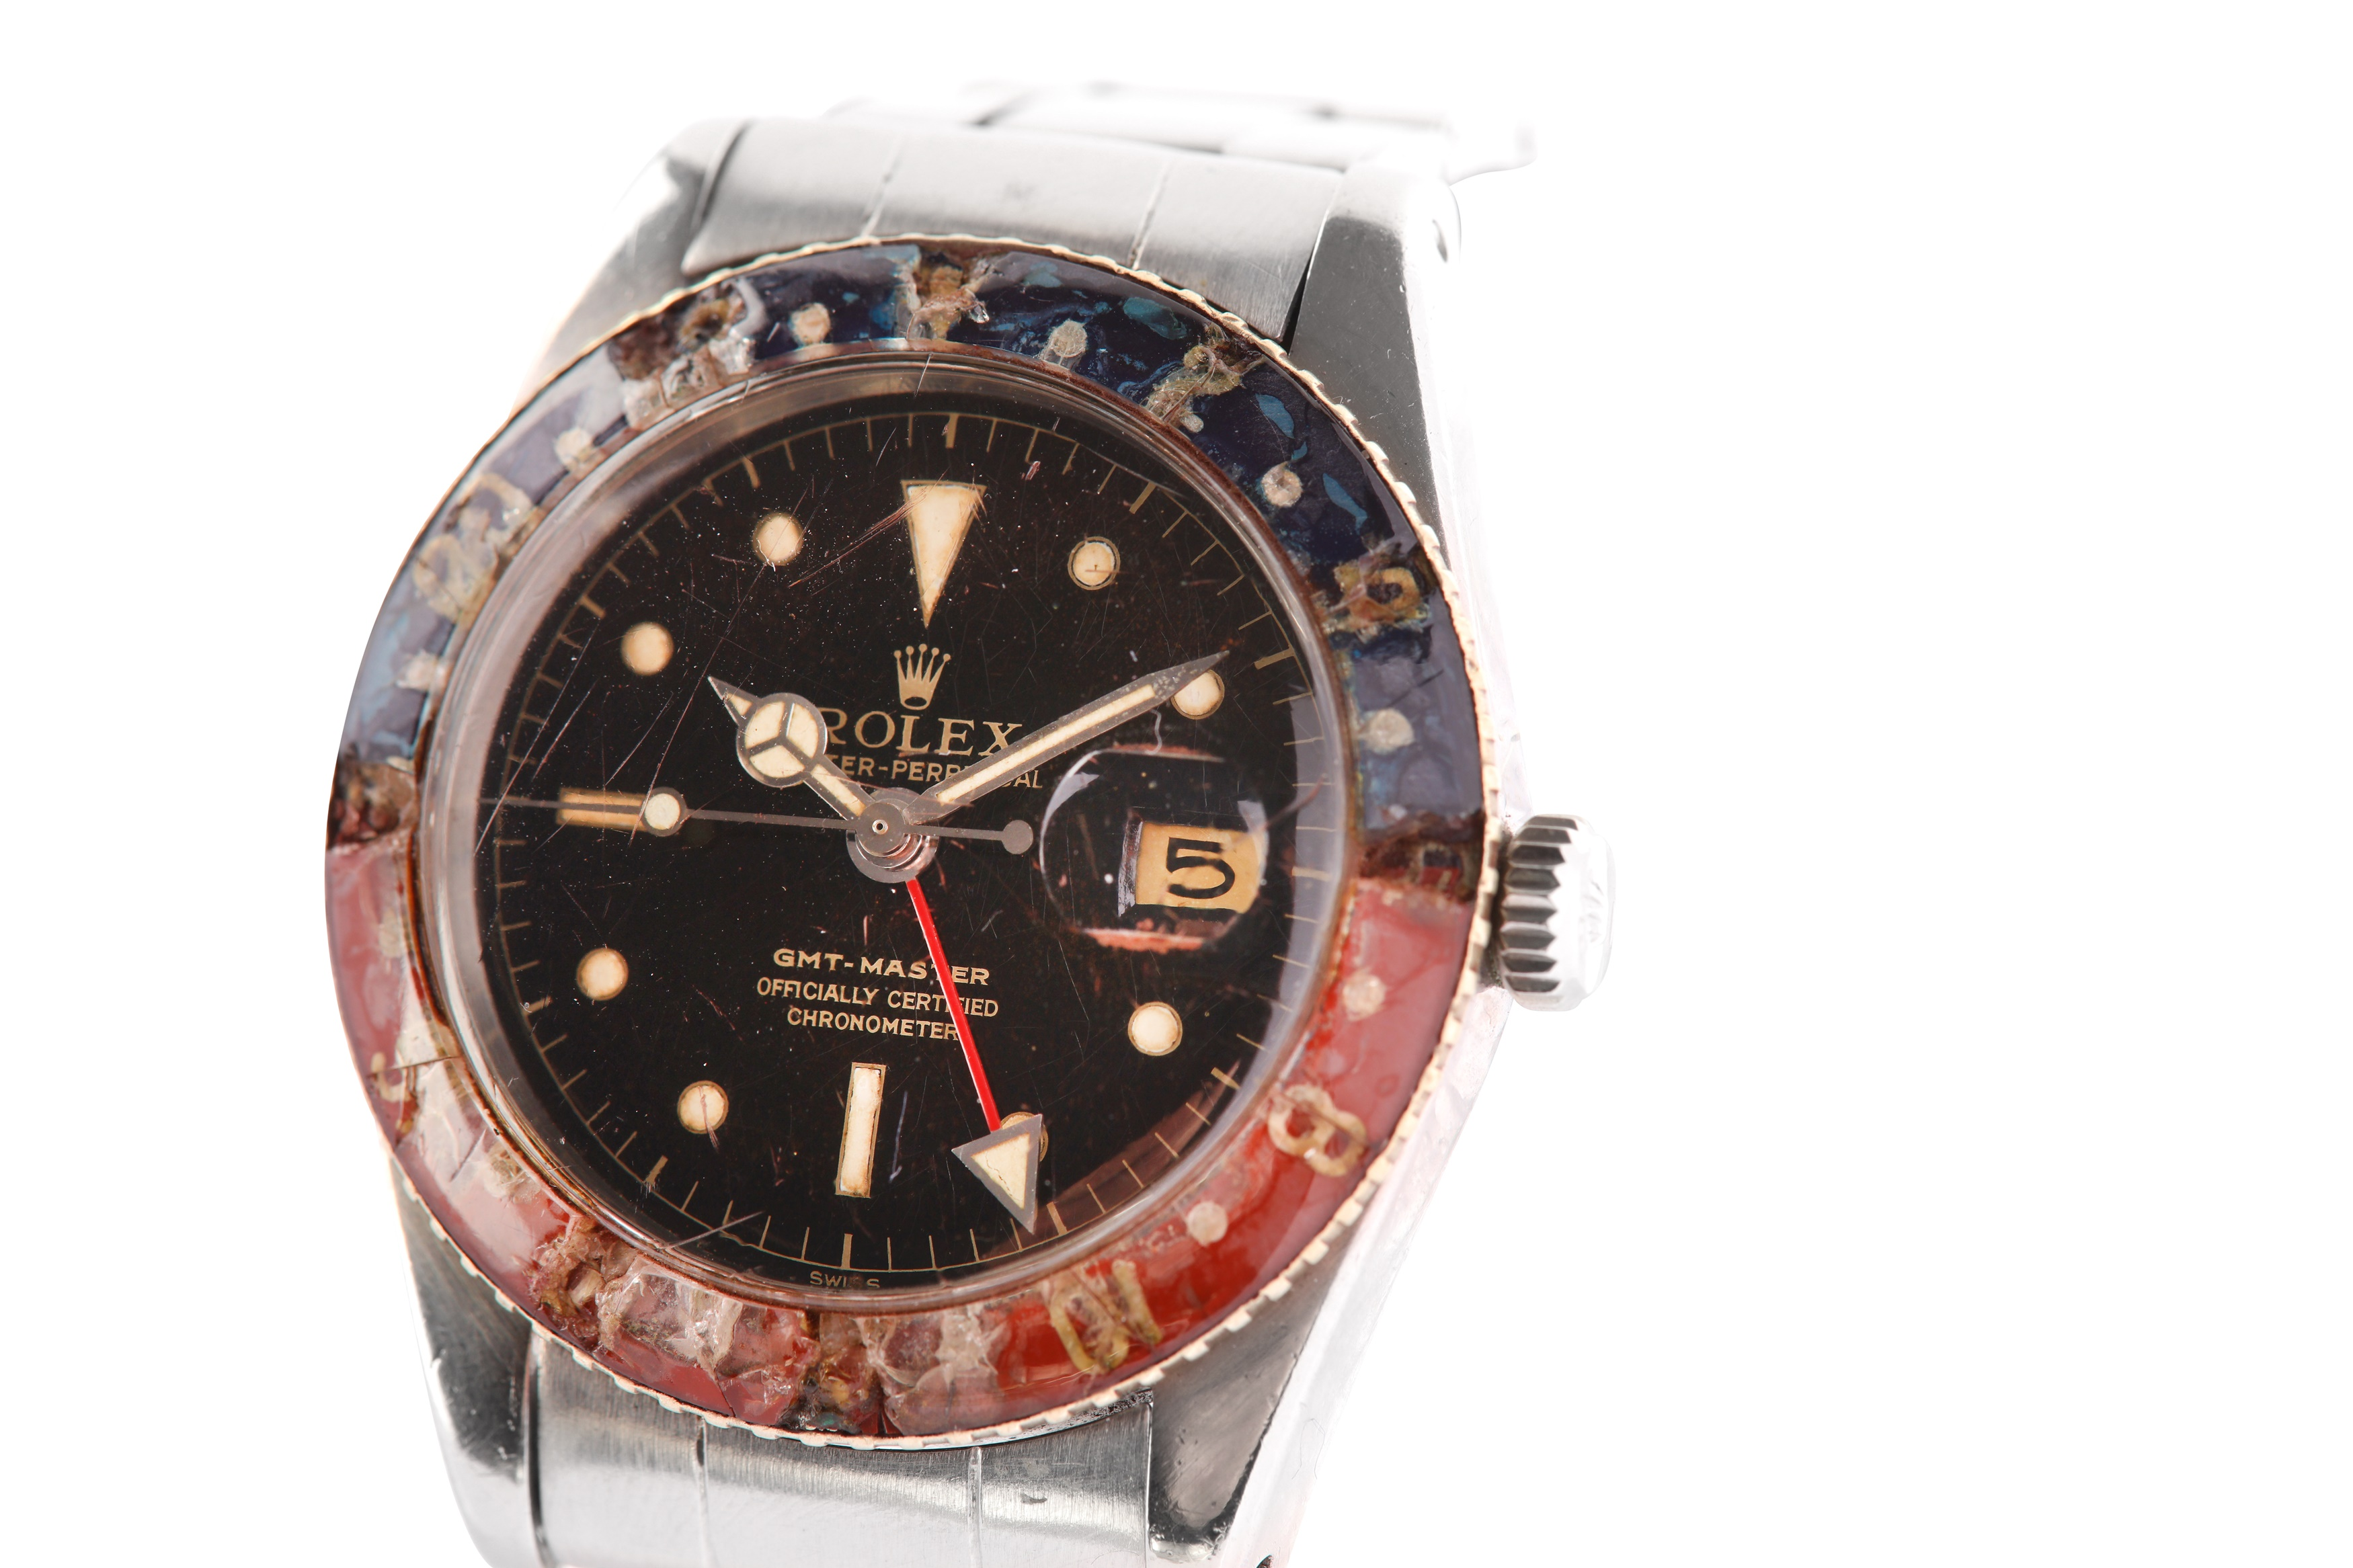 - WITHDRAWN - ROLEX. - Image 8 of 9